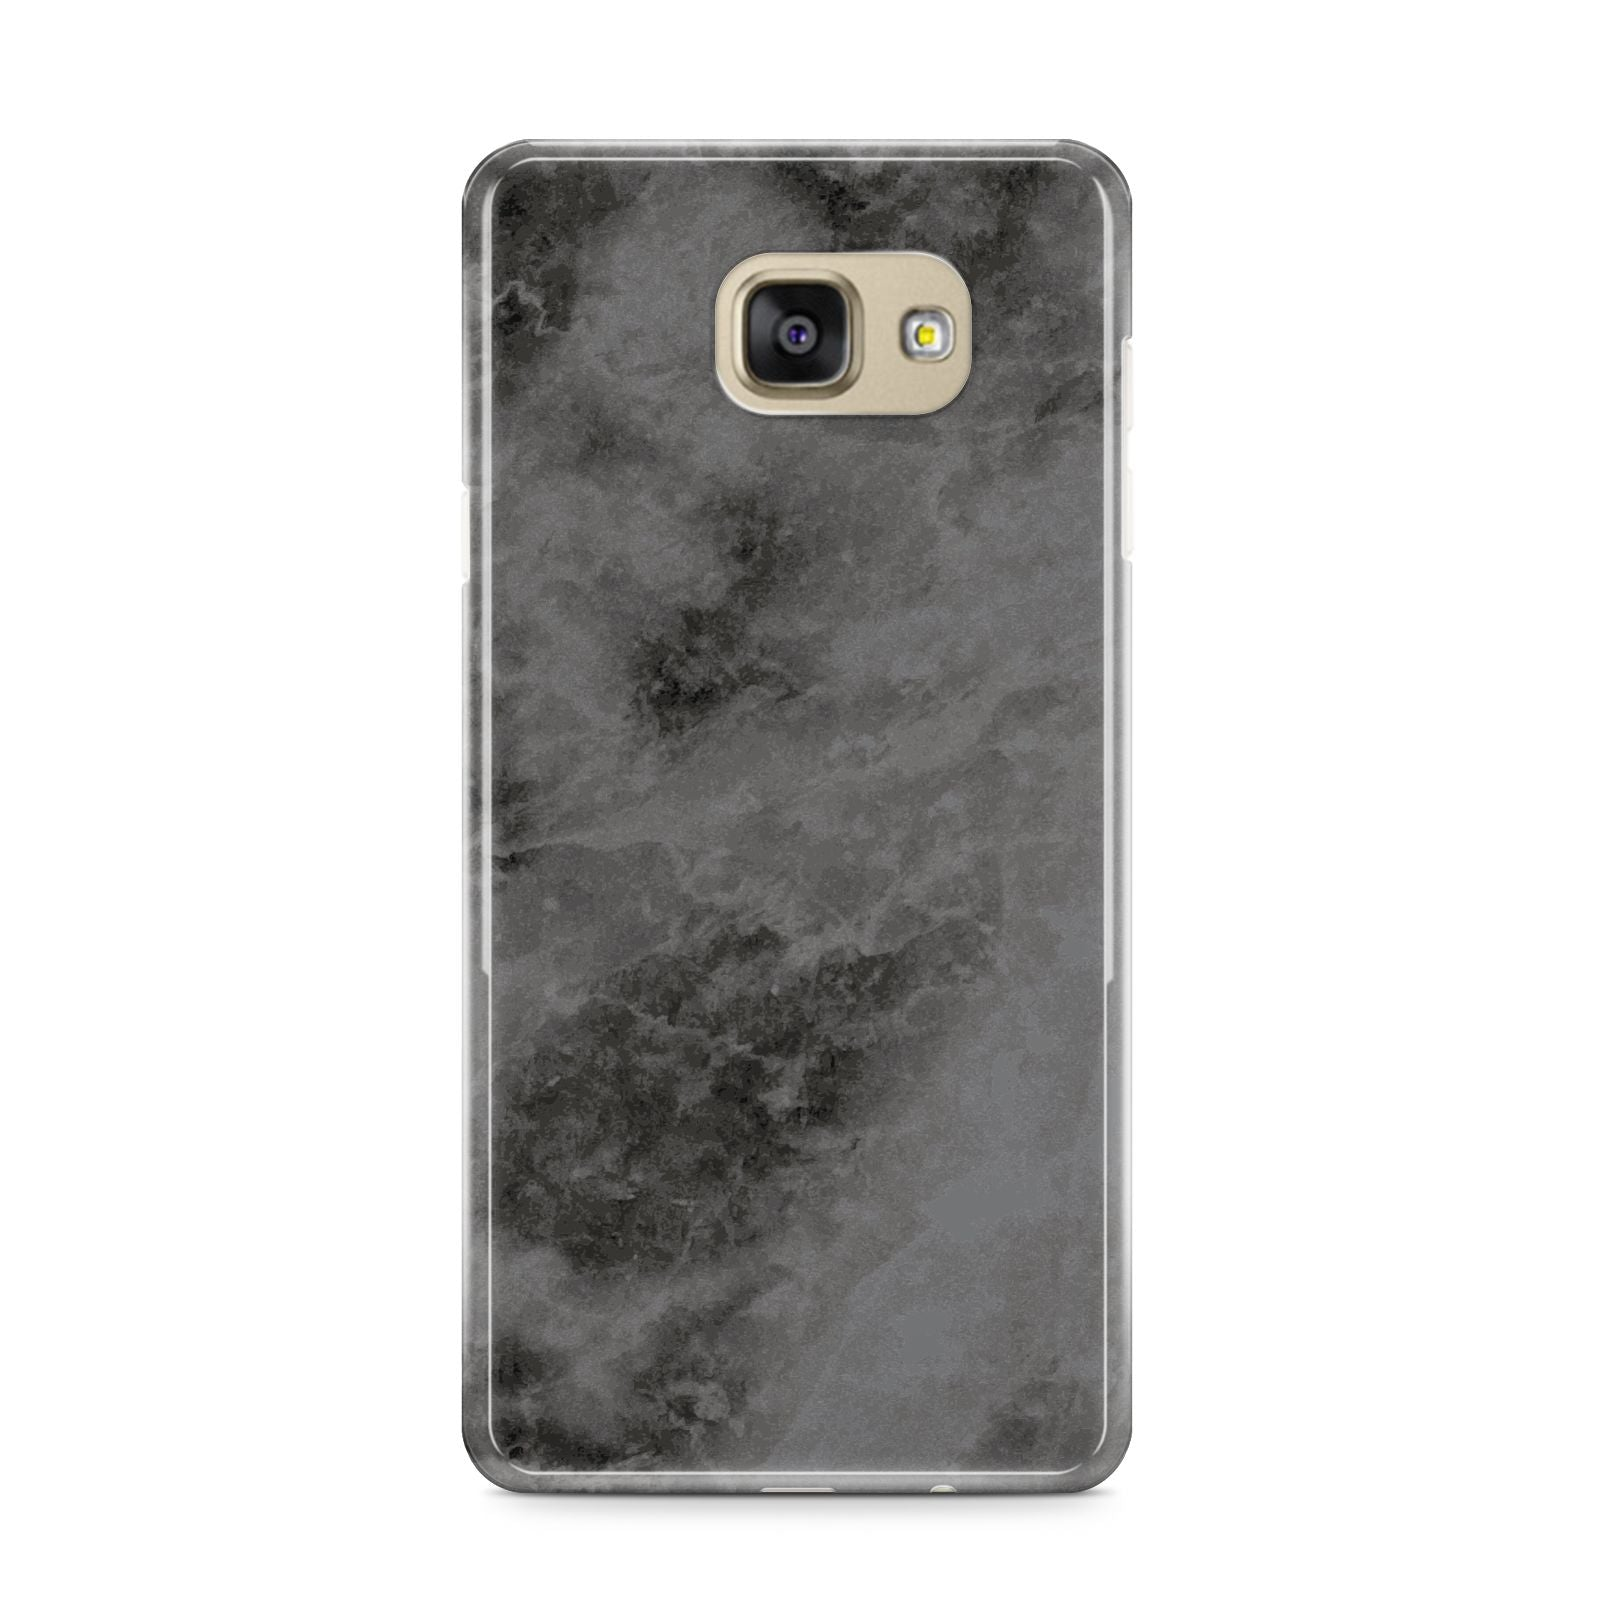 Faux Marble Grey Black Samsung Galaxy A9 2016 Case on gold phone